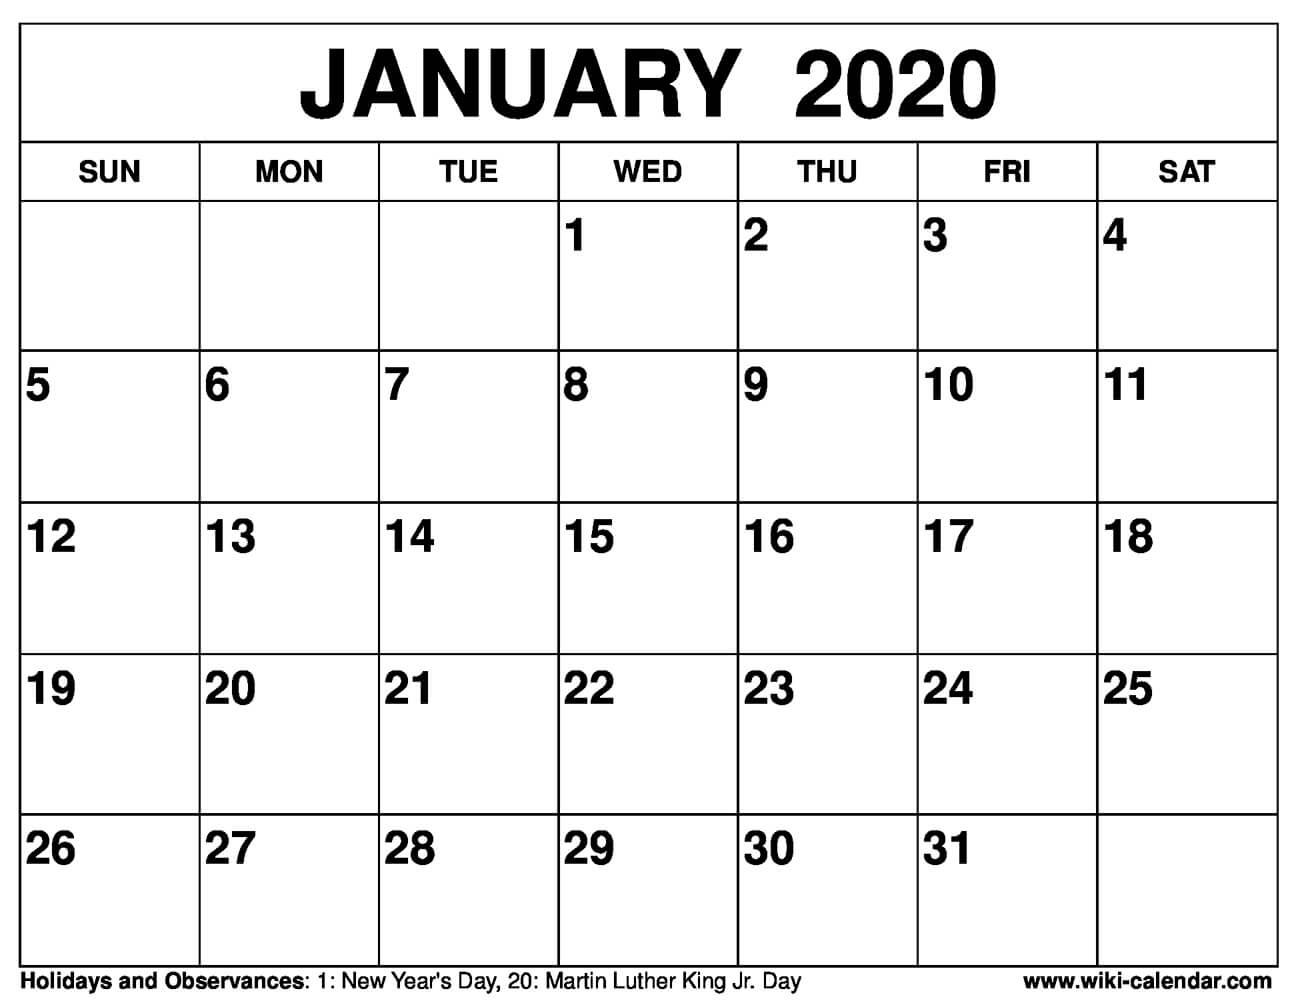 photo relating to January Calendar Printable named Cost-free Printable January 2020 Calendar